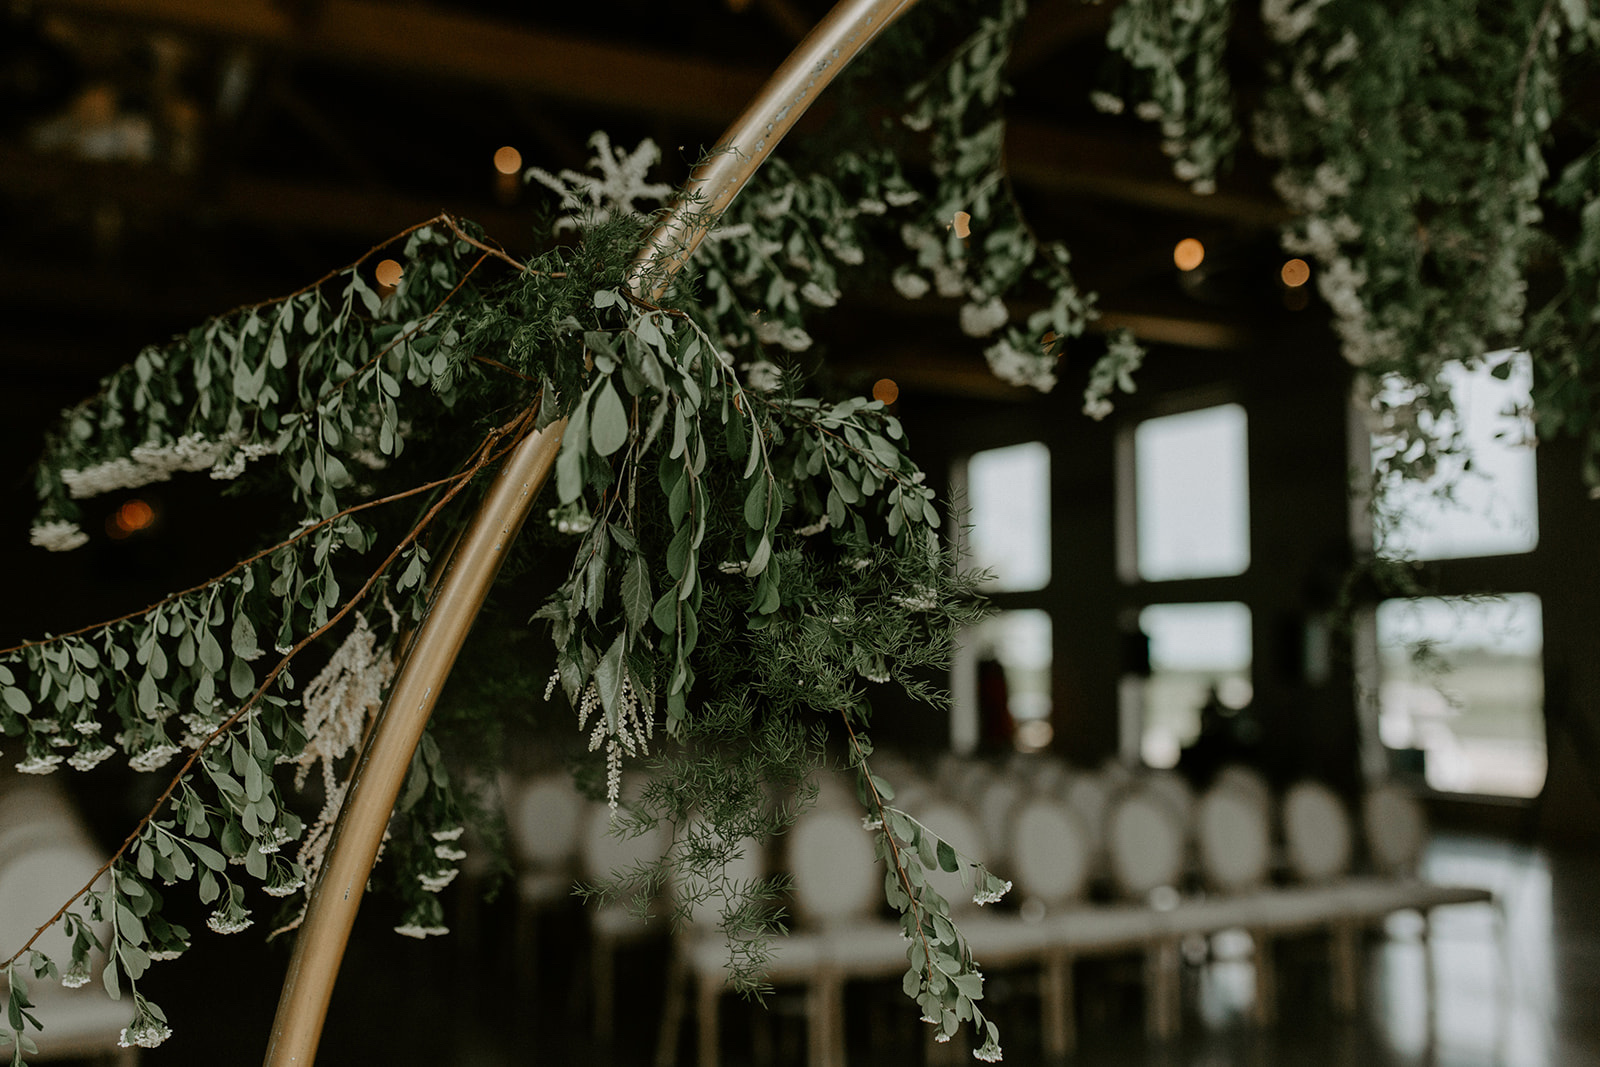 pear_tree_estate_wedding_champaign_il_wright_photographs_smith_0595.jpg